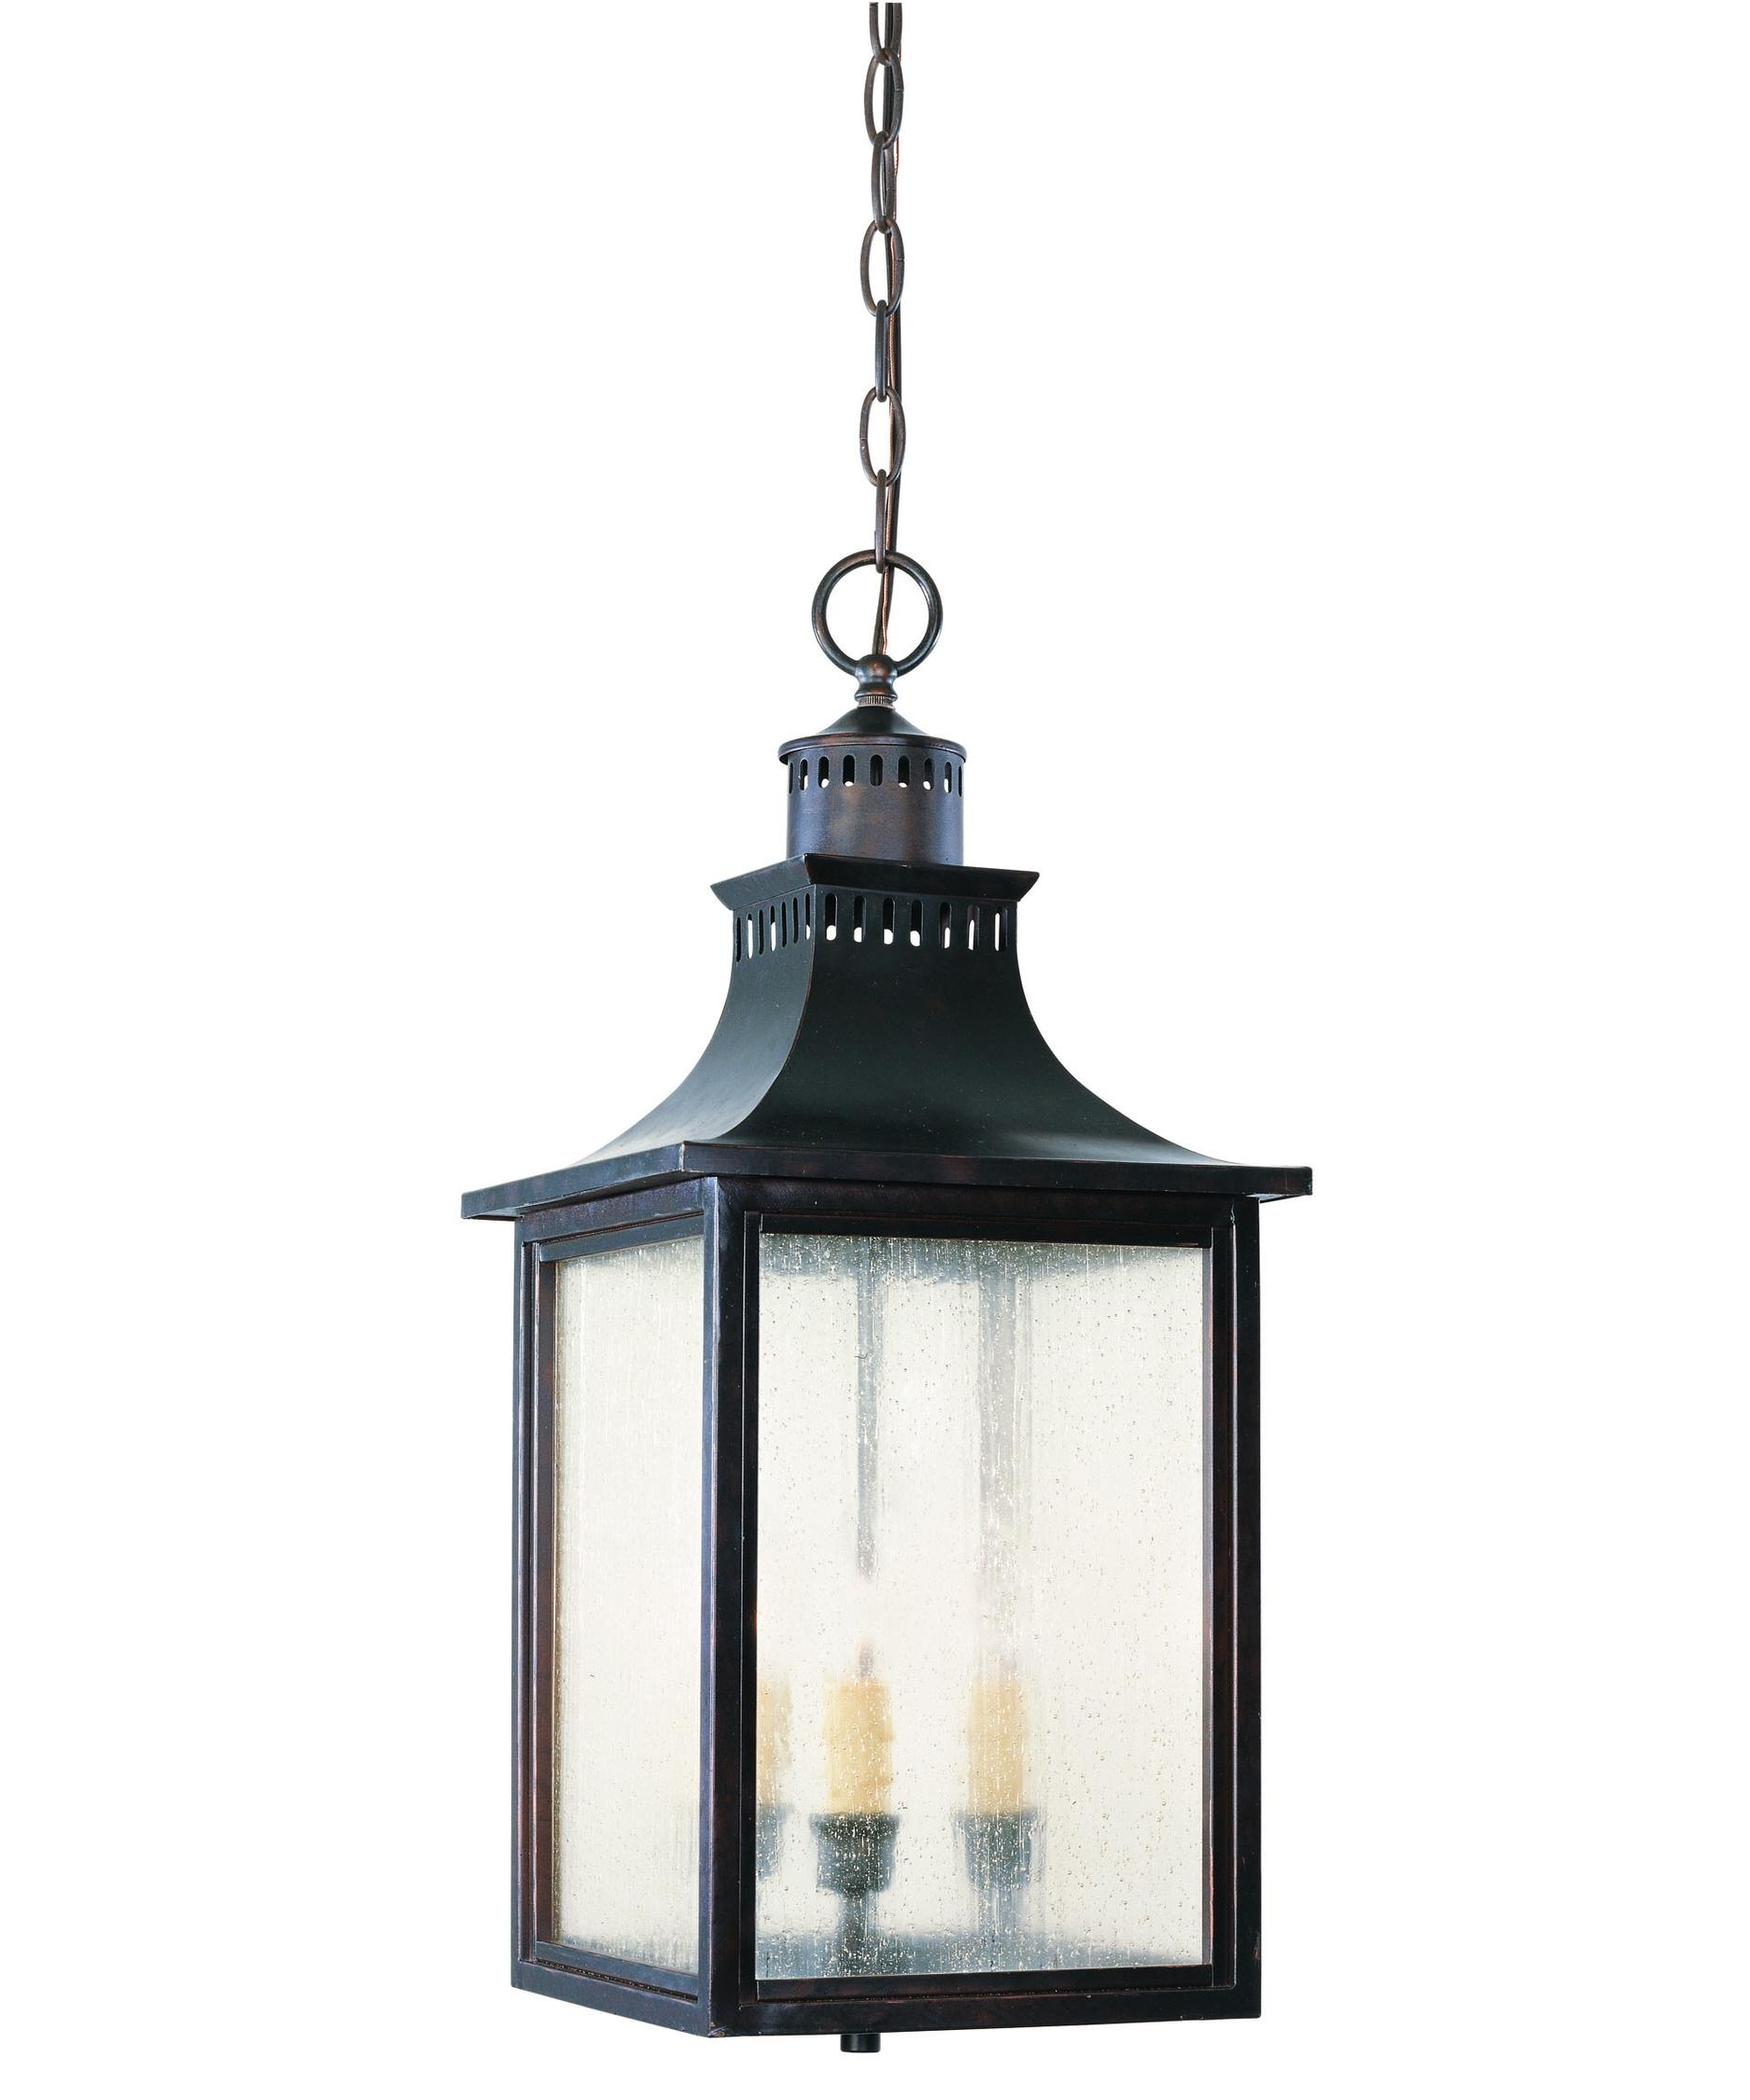 Popular Savoy House 5 256 Monte Grande 10 Inch Wide 3 Light Outdoor Hanging With Regard To Outdoor Weather Resistant Lanterns (View 10 of 20)